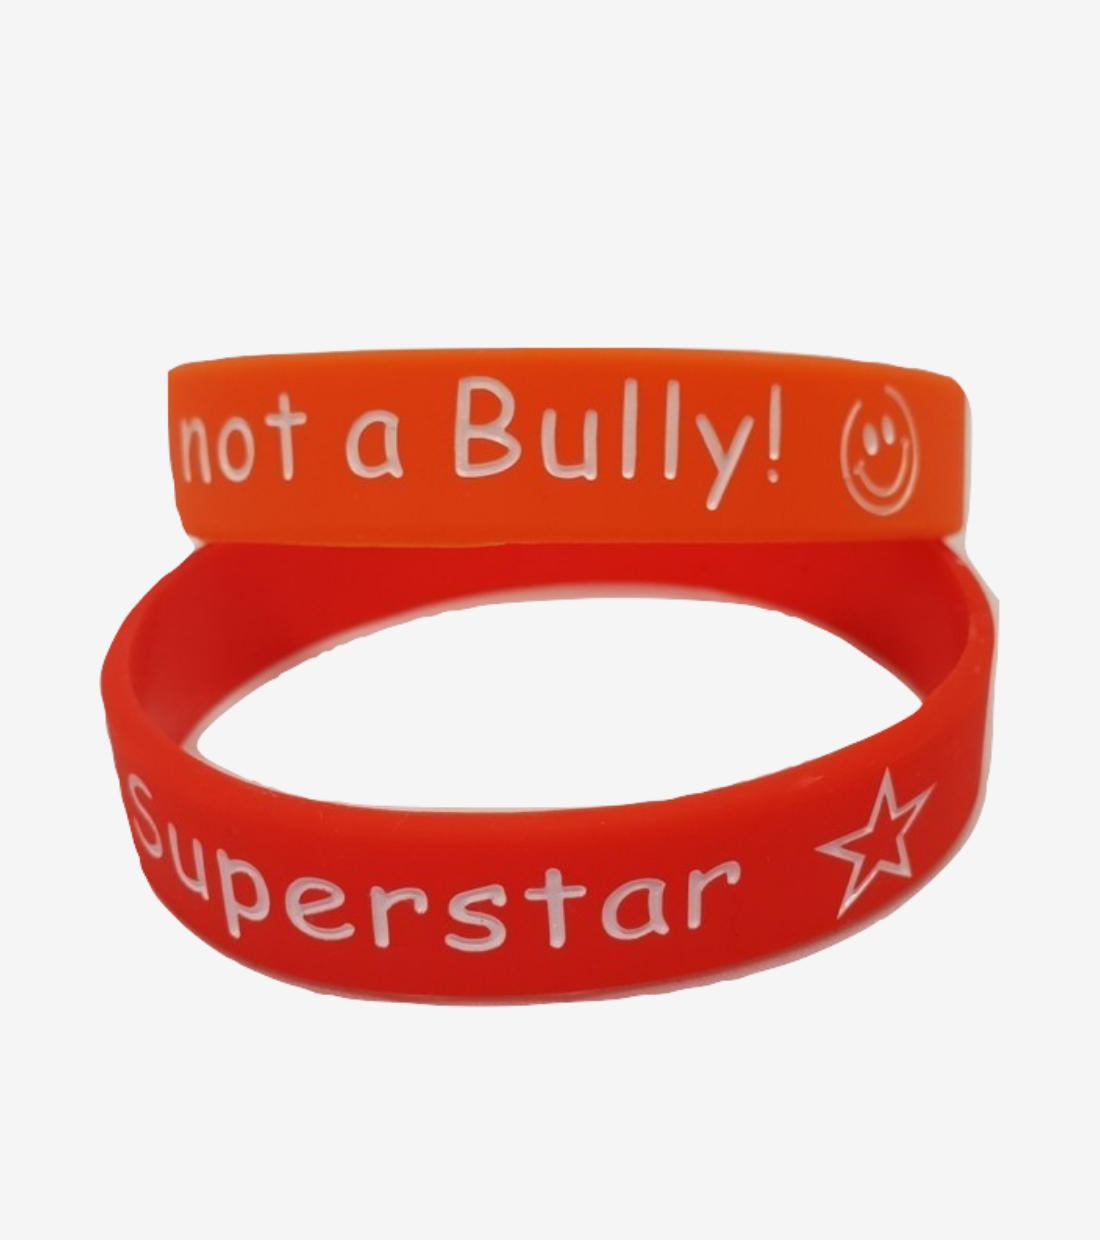 Be a Buddy and Spelling Superstar School Wristbands